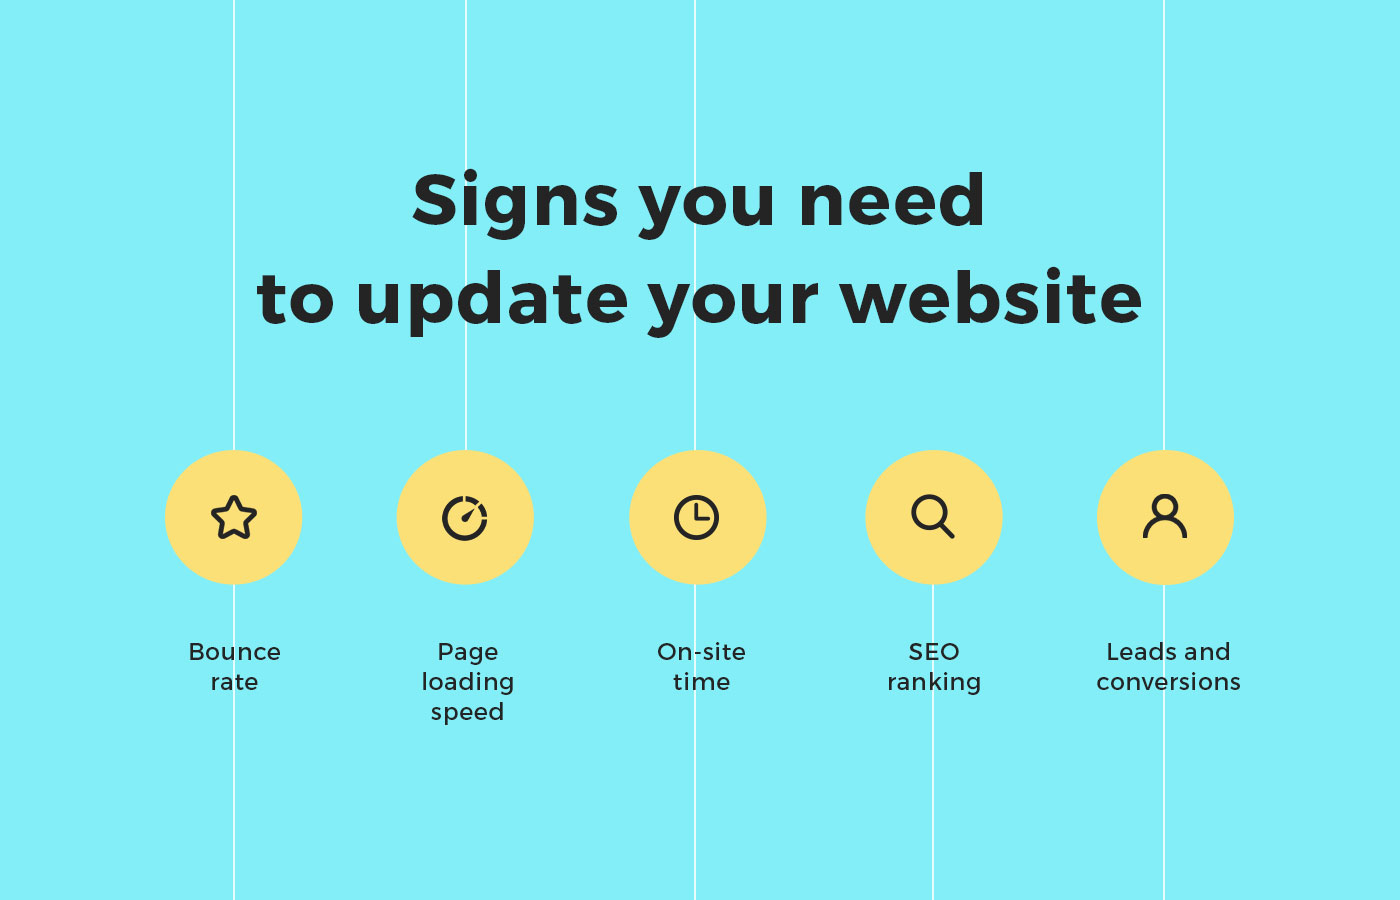 Signs you need to update your website